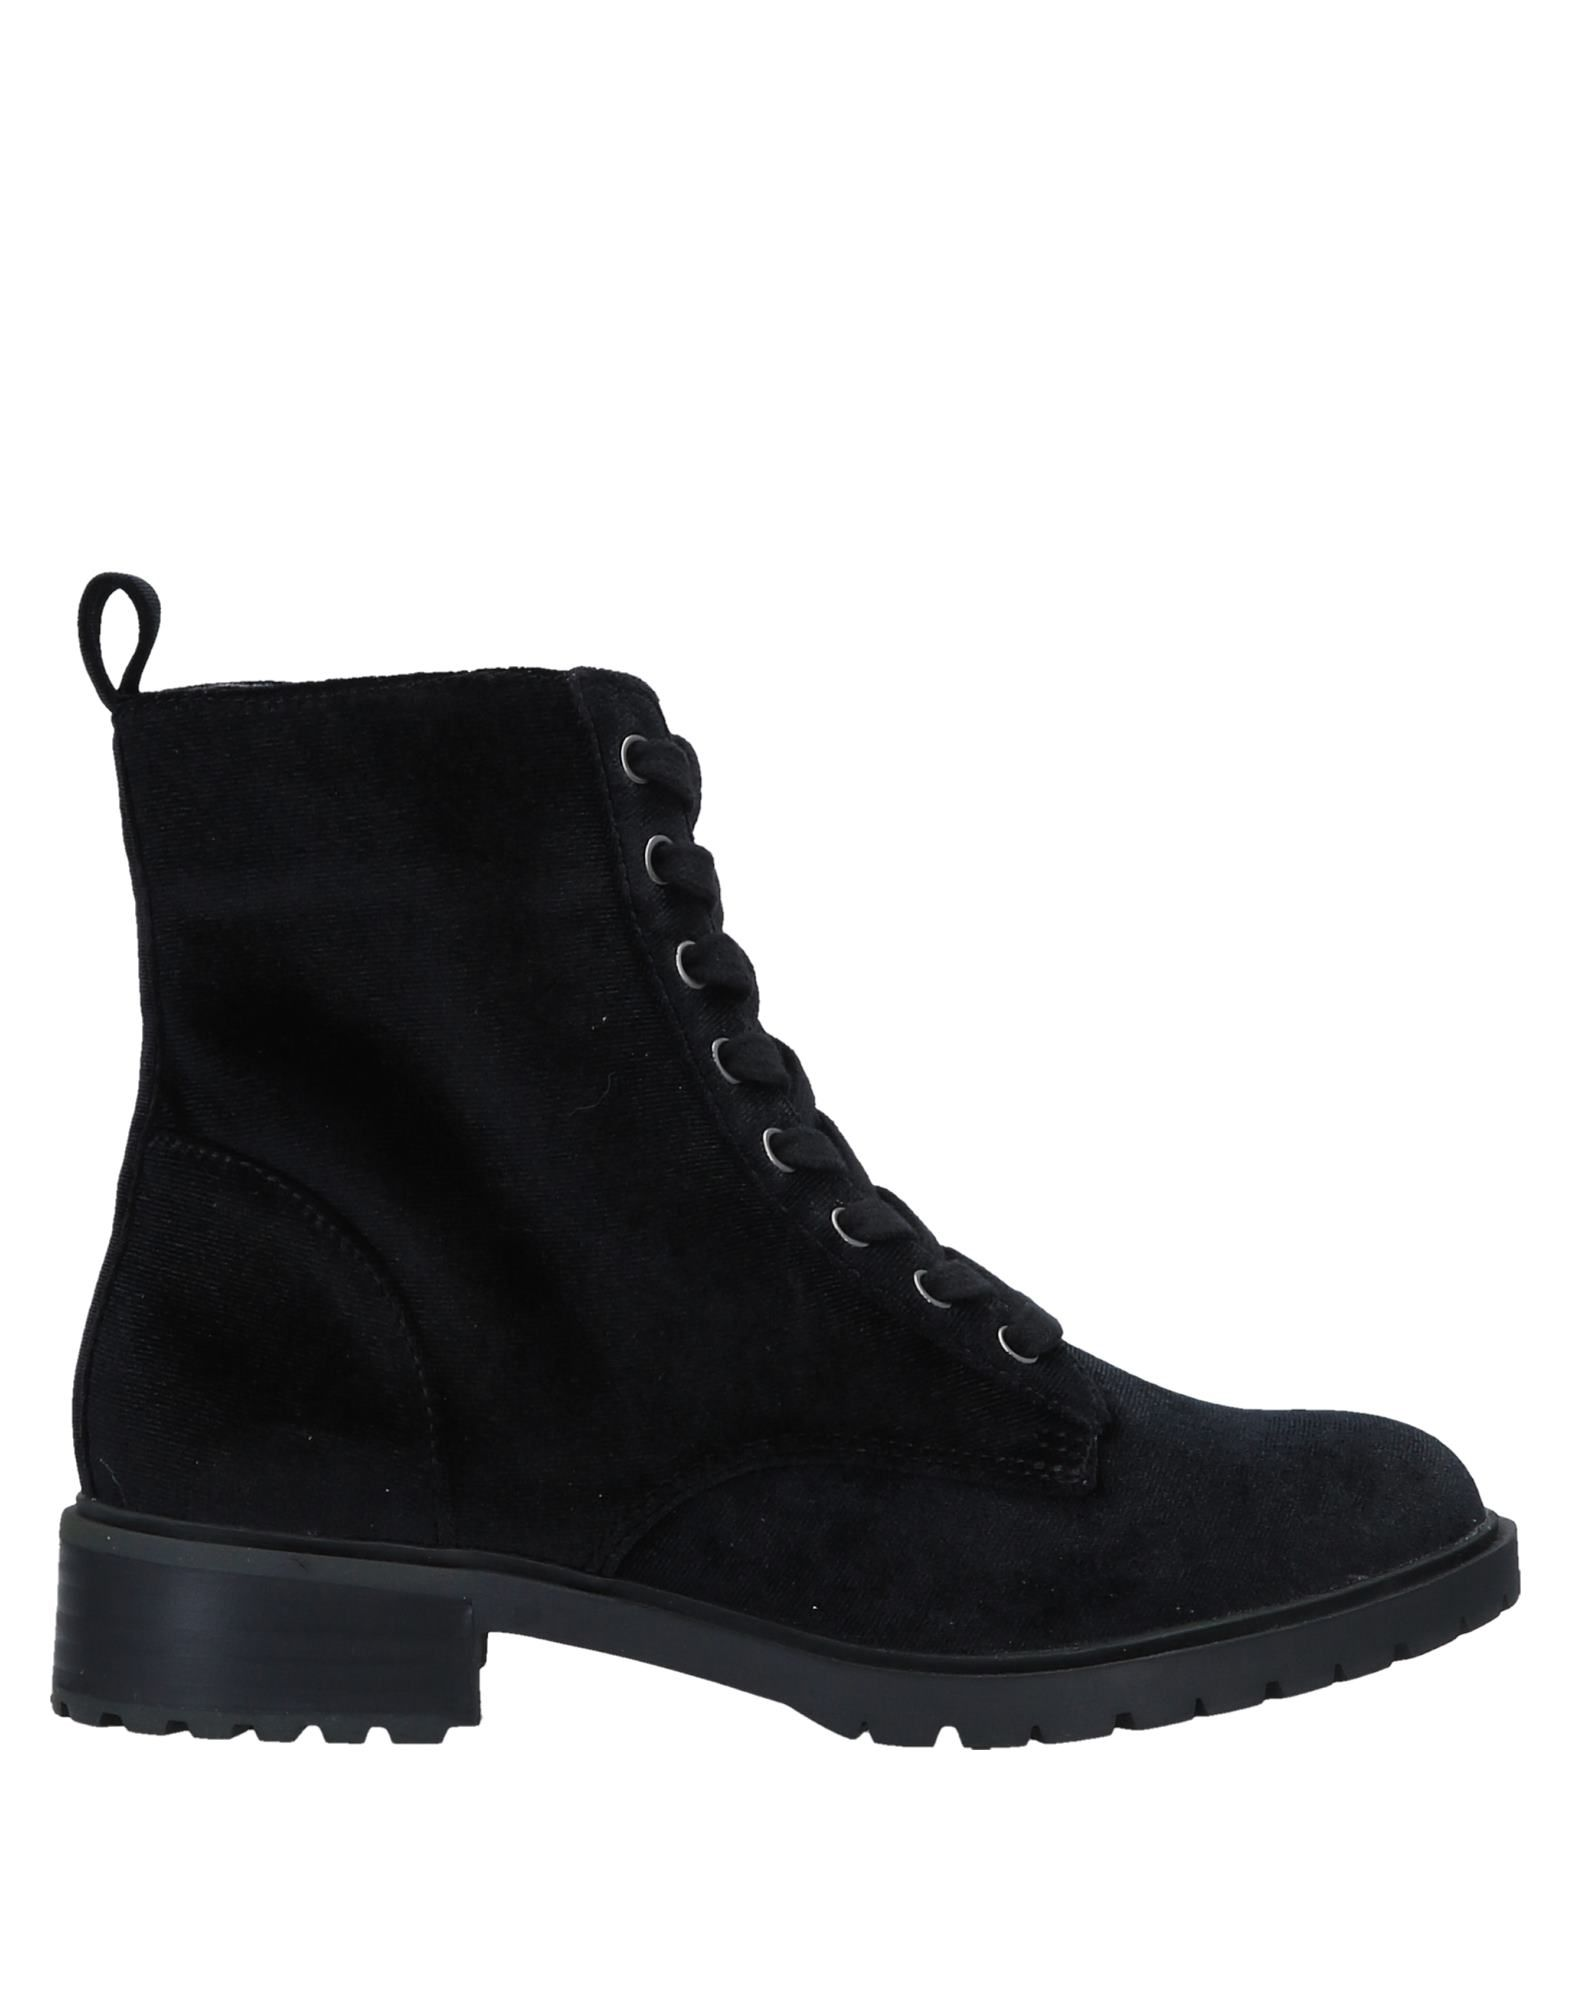 Bottine Mode Steve Madden Femme - Bottines Steve Madden Noir Mode Bottine pas cher et belle a76fcb